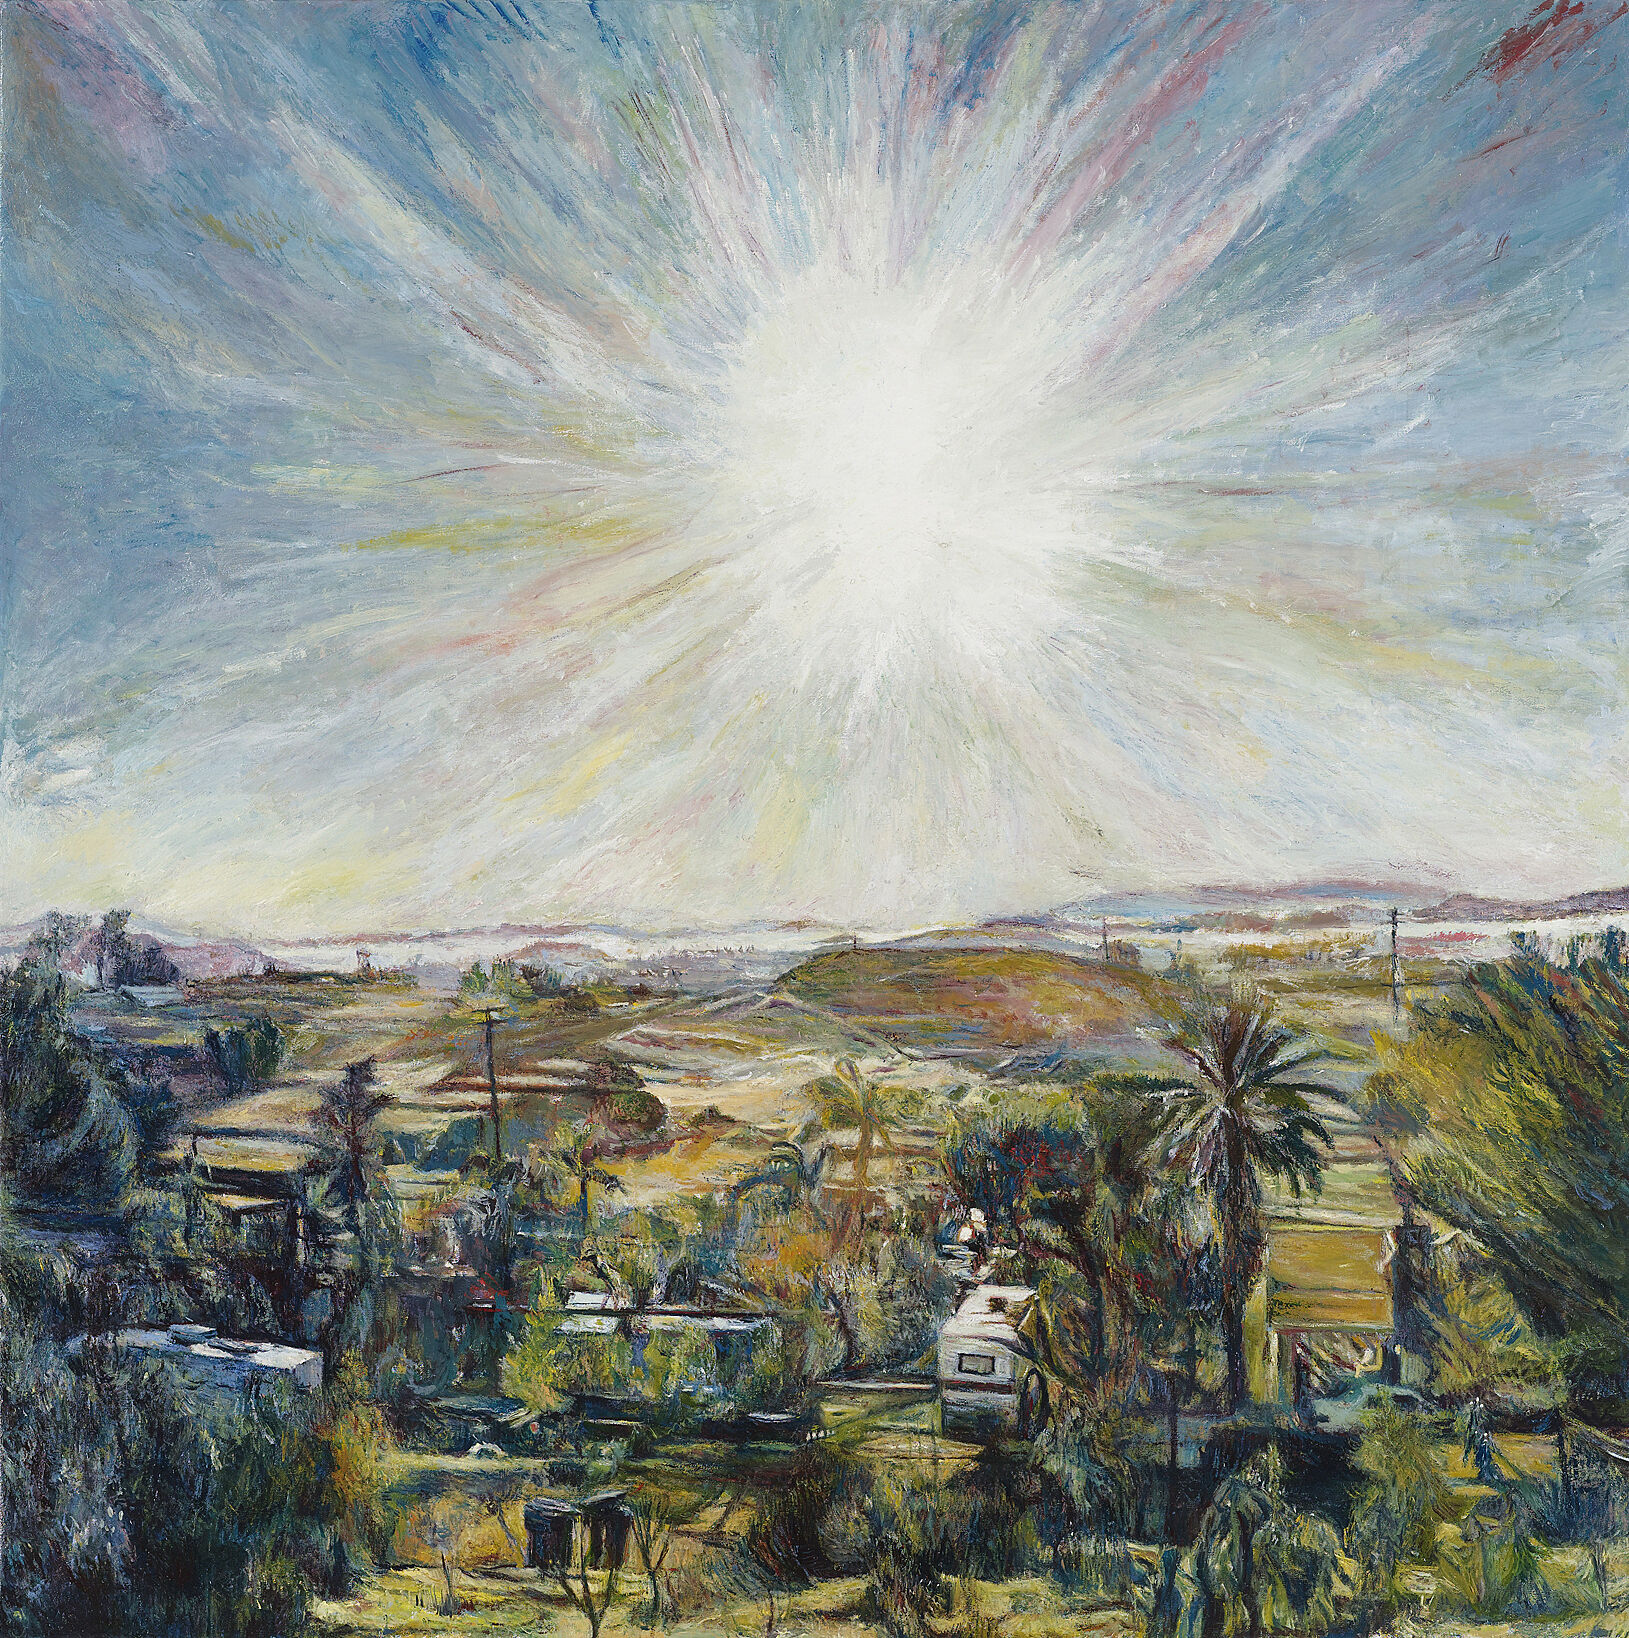 A painting of a sun shining over a city.